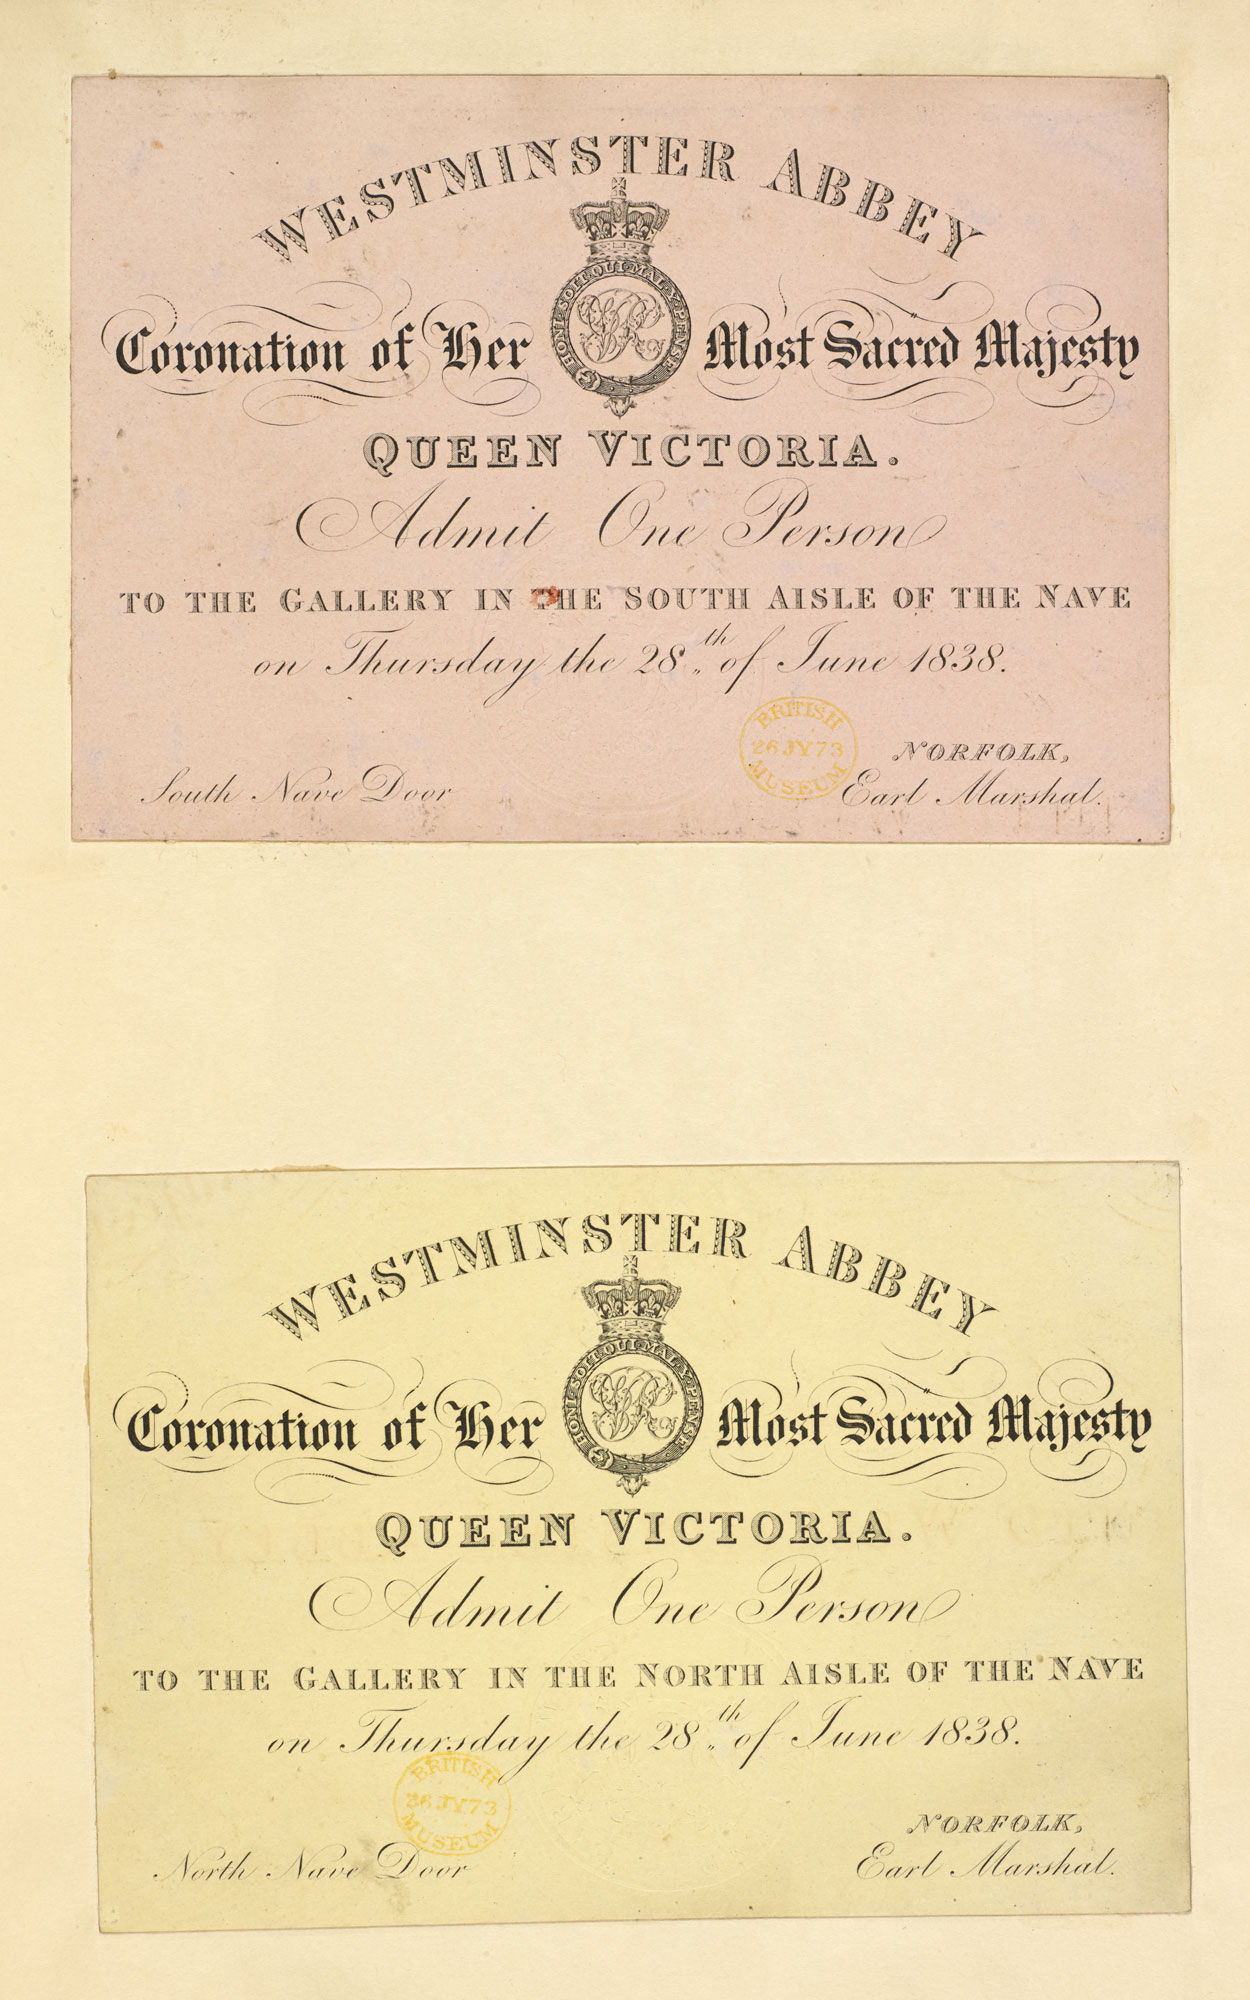 Material relating to the Coronation of Queen Victoria [page: 0]